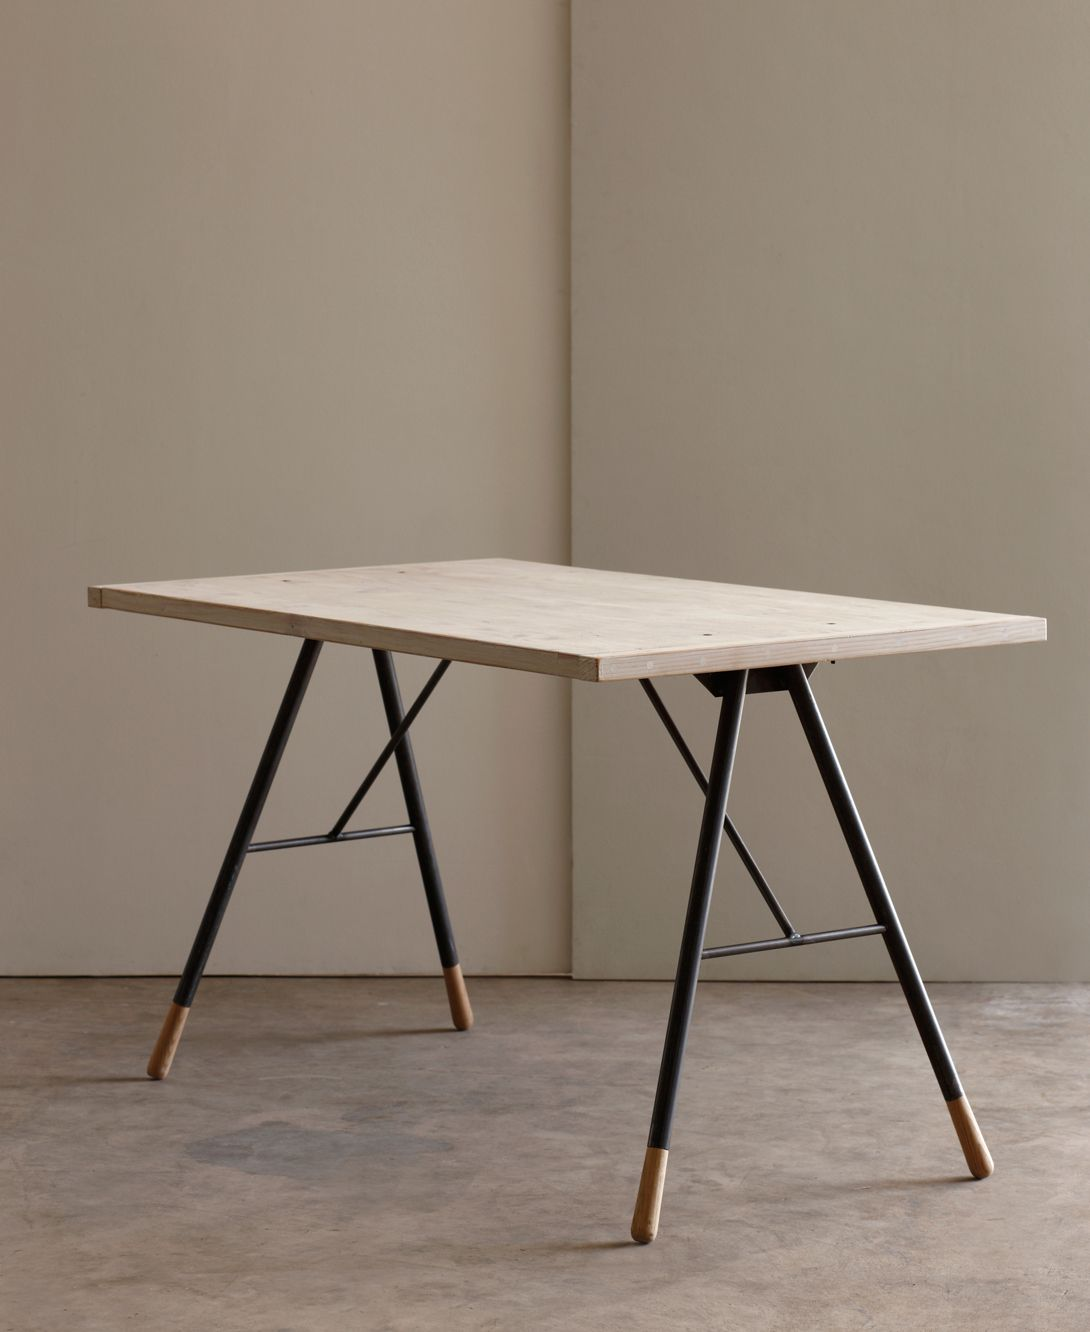 Lostine - reclaimed desk, smart industrial desk but with slim profiles, requires species top and smart edge detail.